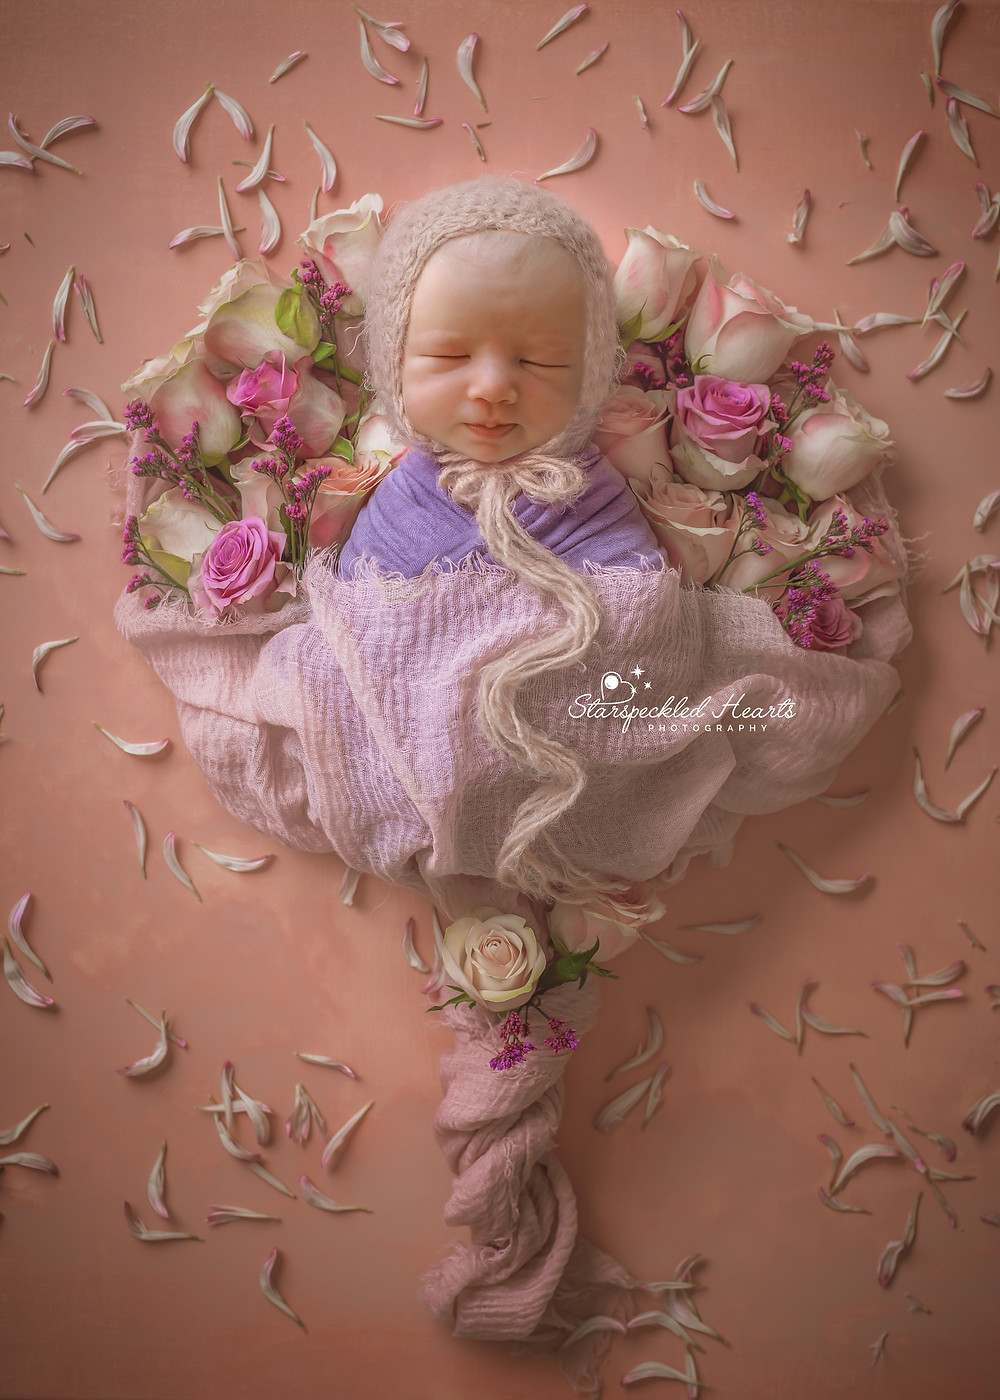 gorgeous sleeping baby girl laying in a bouquet arrangement of flowers on a pink background